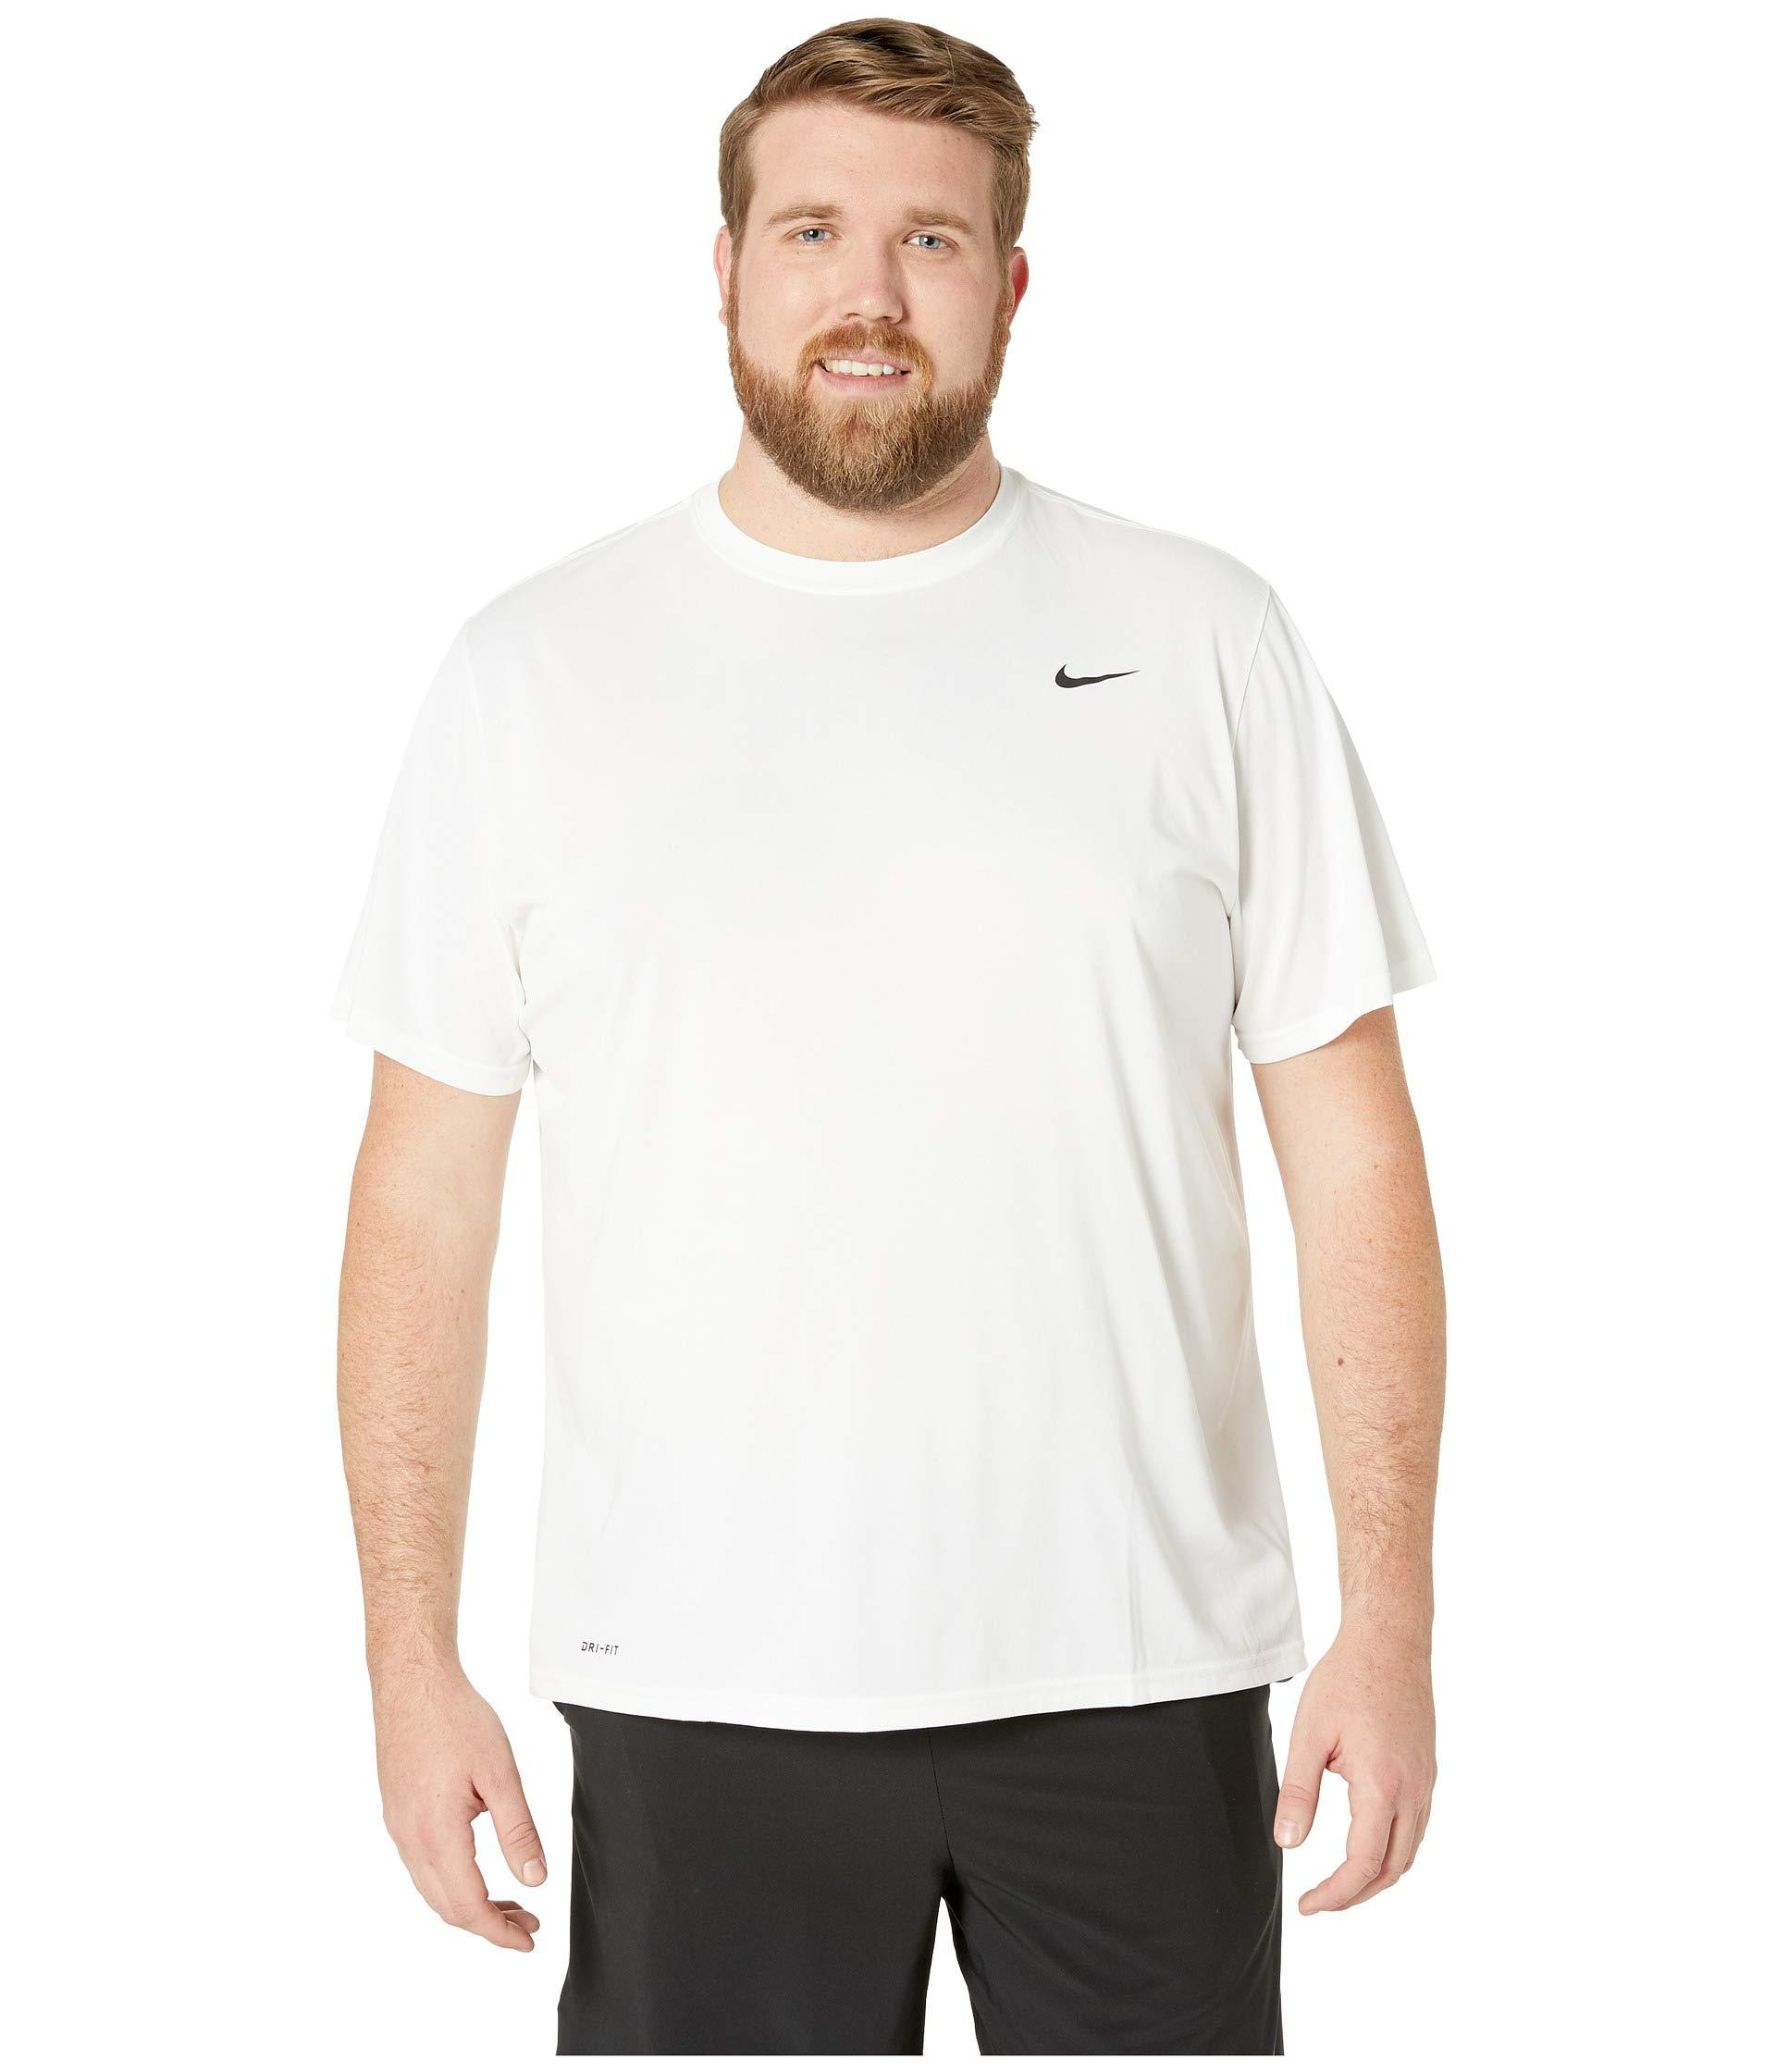 babe770ff Nike Mens Tall Shirts - DREAMWORKS